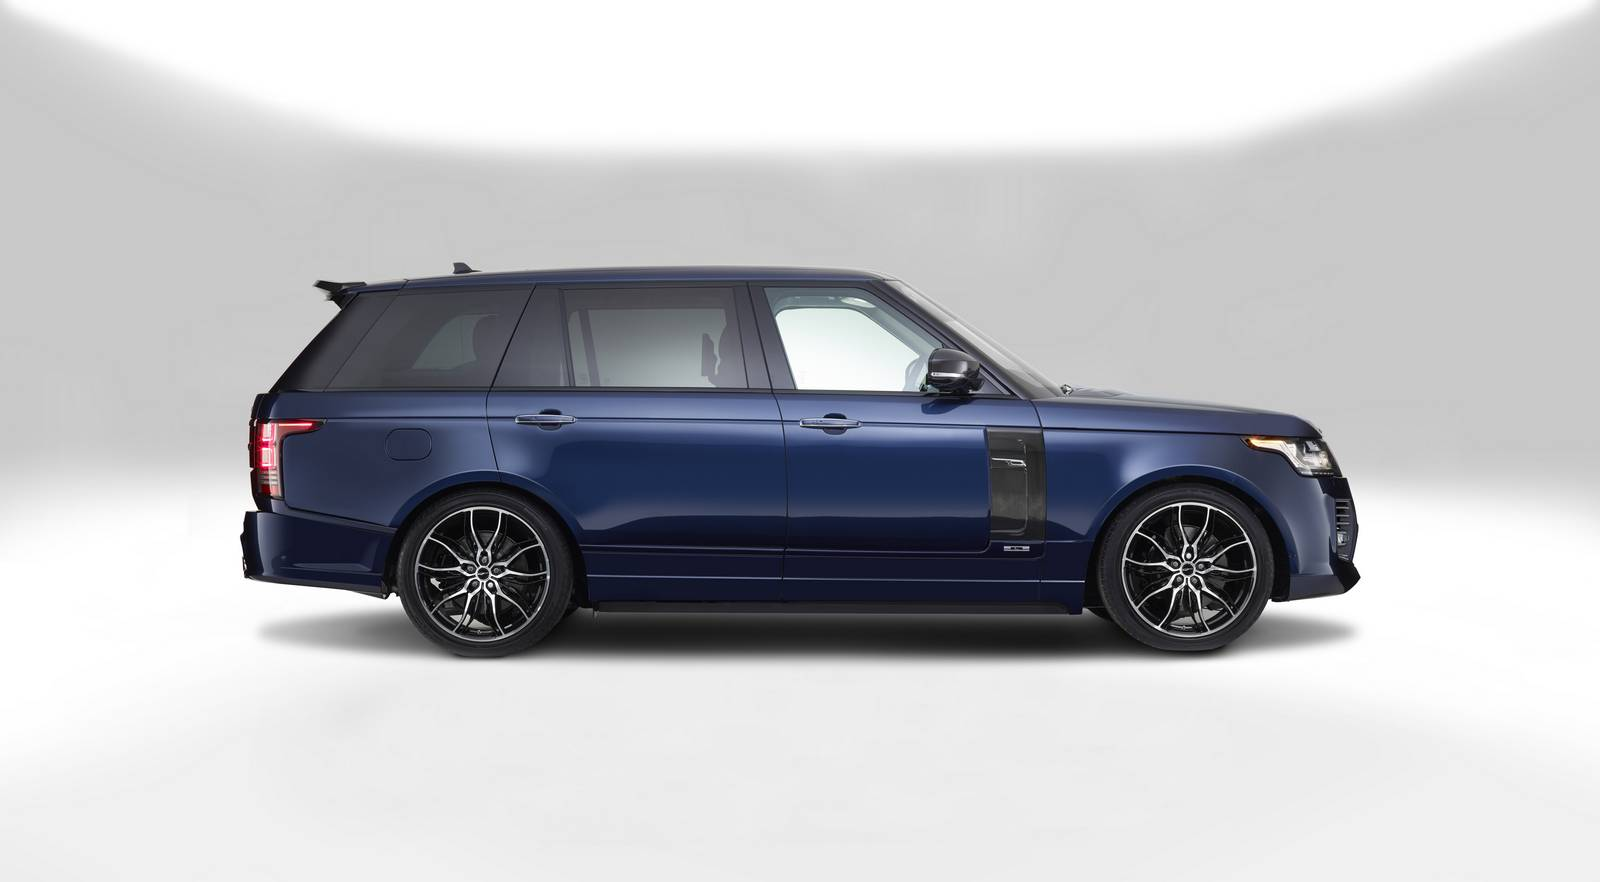 Official: 1 of 1 Overfinch Range Rover London Edition, £ ...